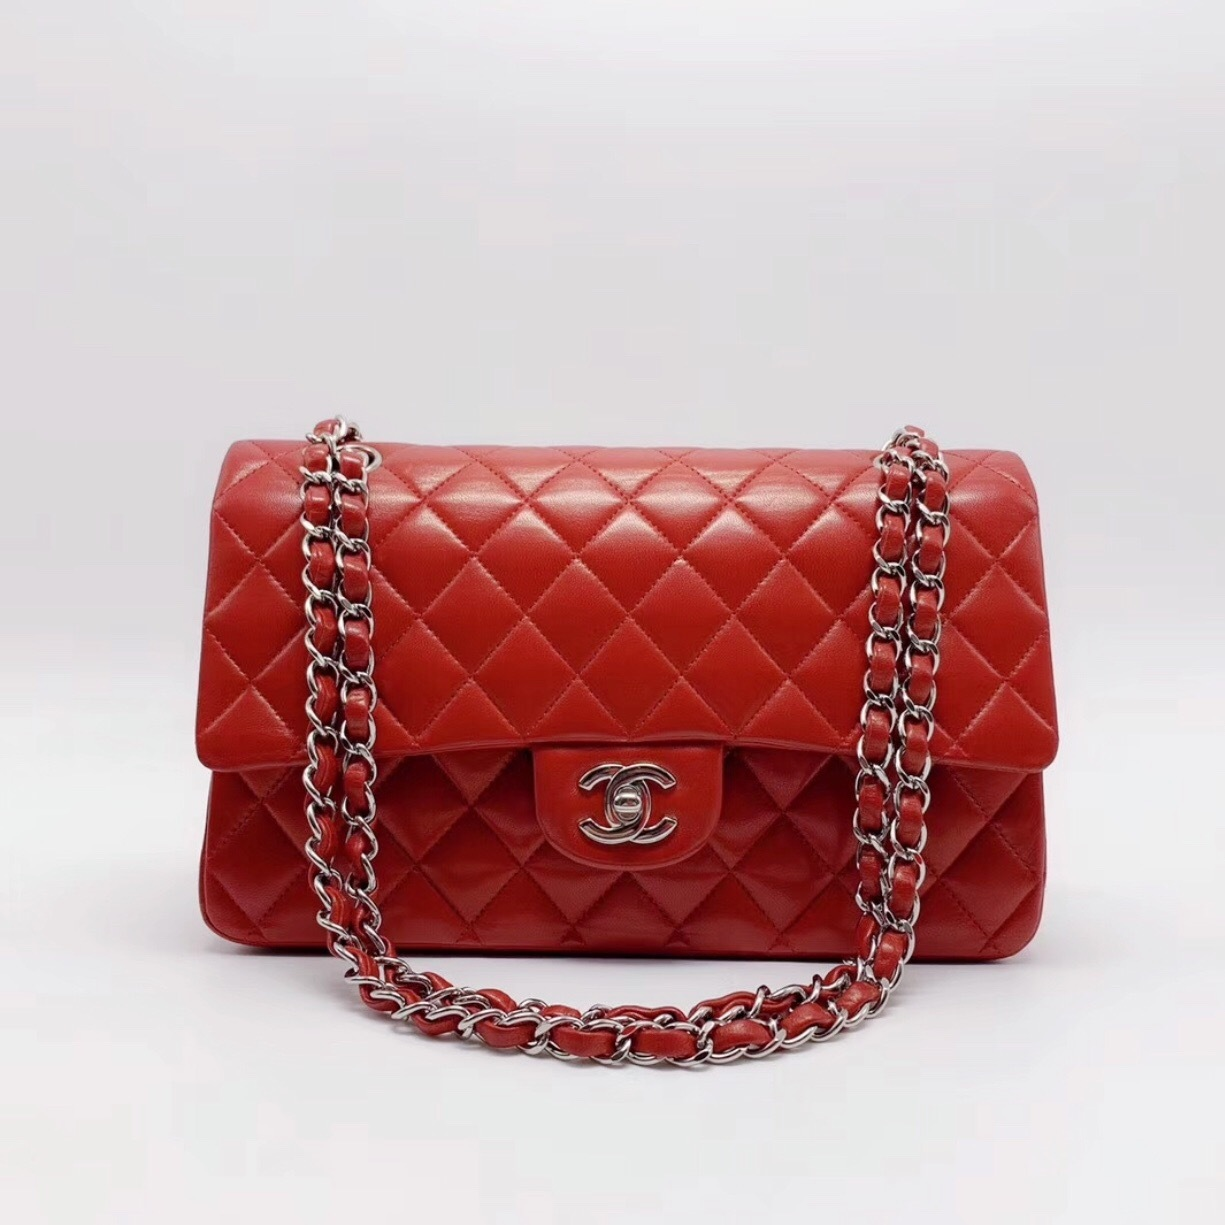 AUTHENTIC Chanel RED Quilted LAMBSKIN MEDIUM DOUBLE FLAP BAG SILVERTONE HW